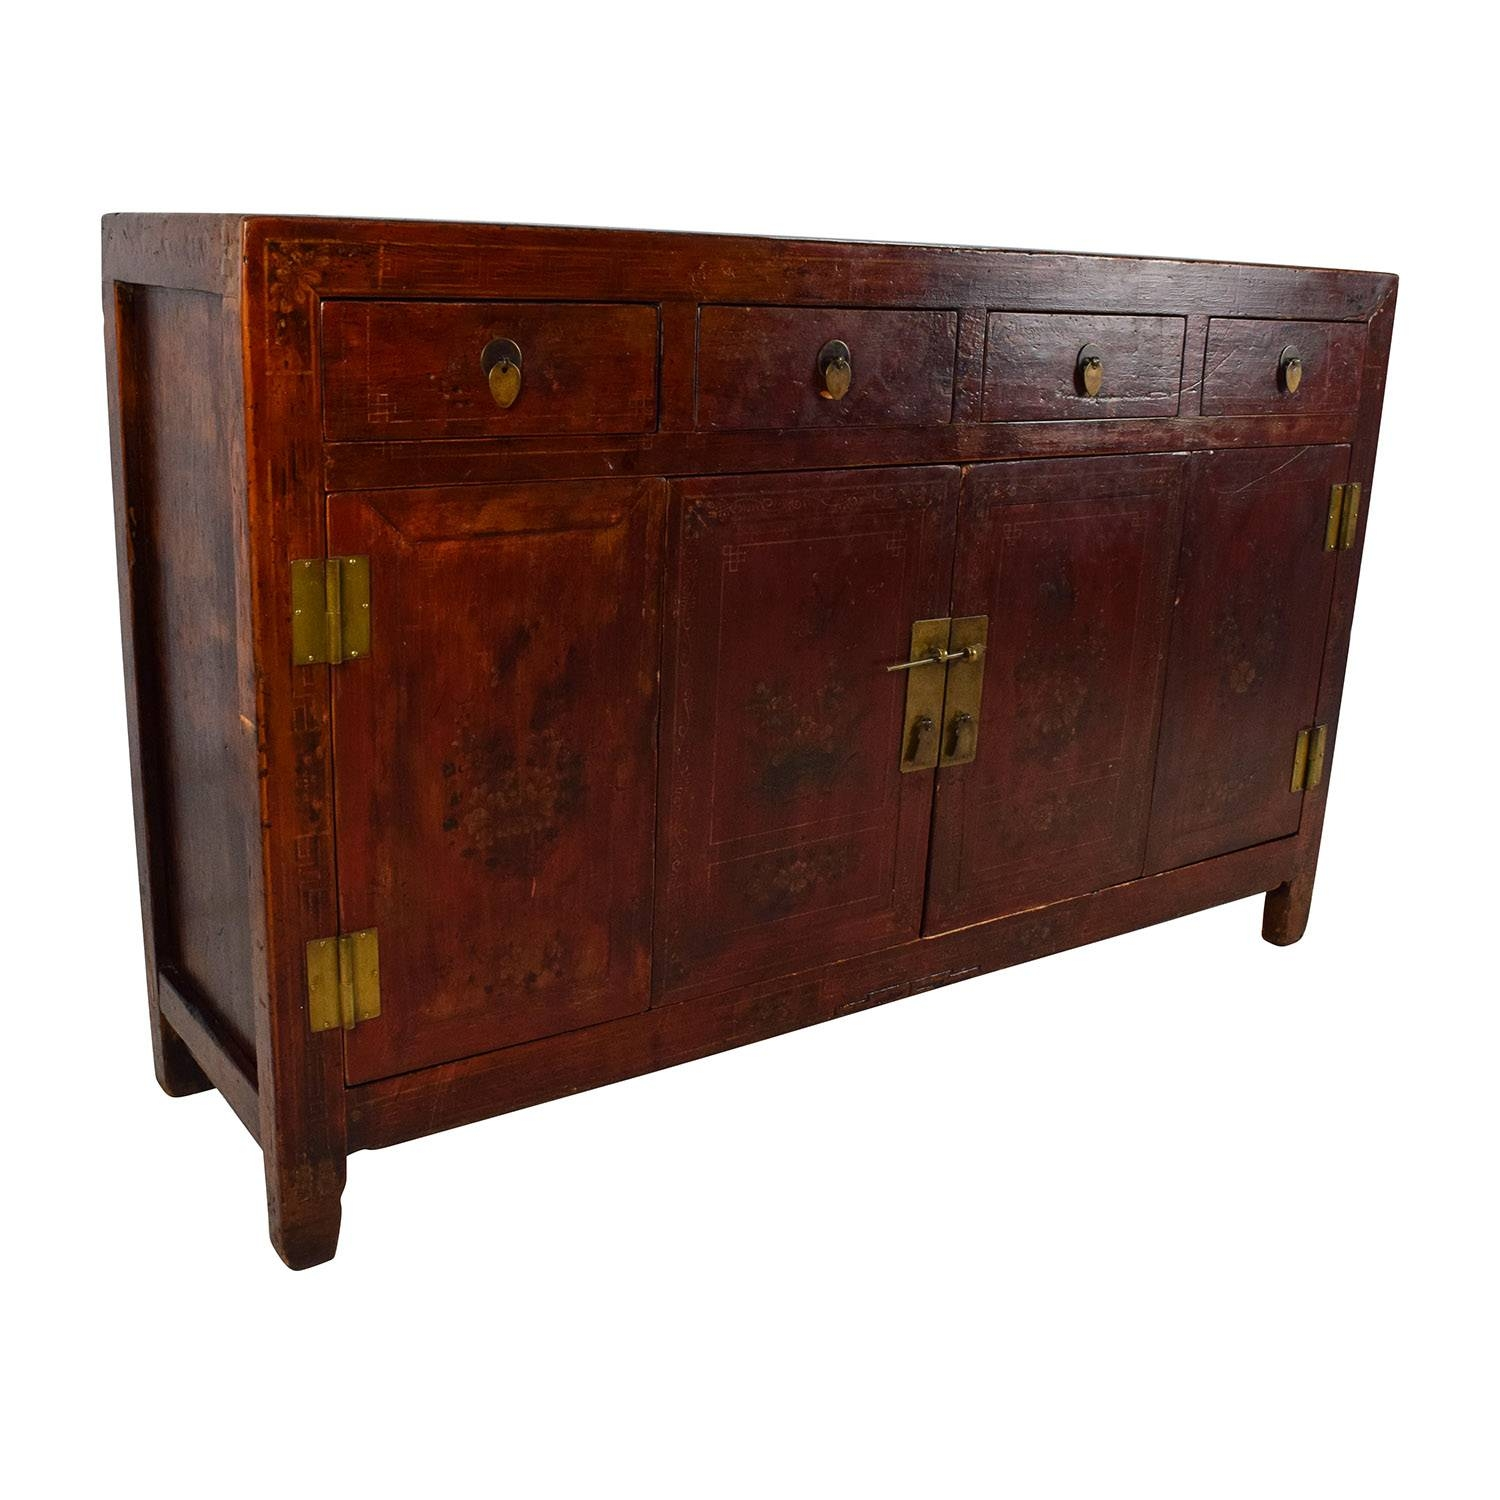 66% Off - Solid Wood Southeast Asian Credenza / Storage regarding Asian Sideboards (Image 9 of 30)